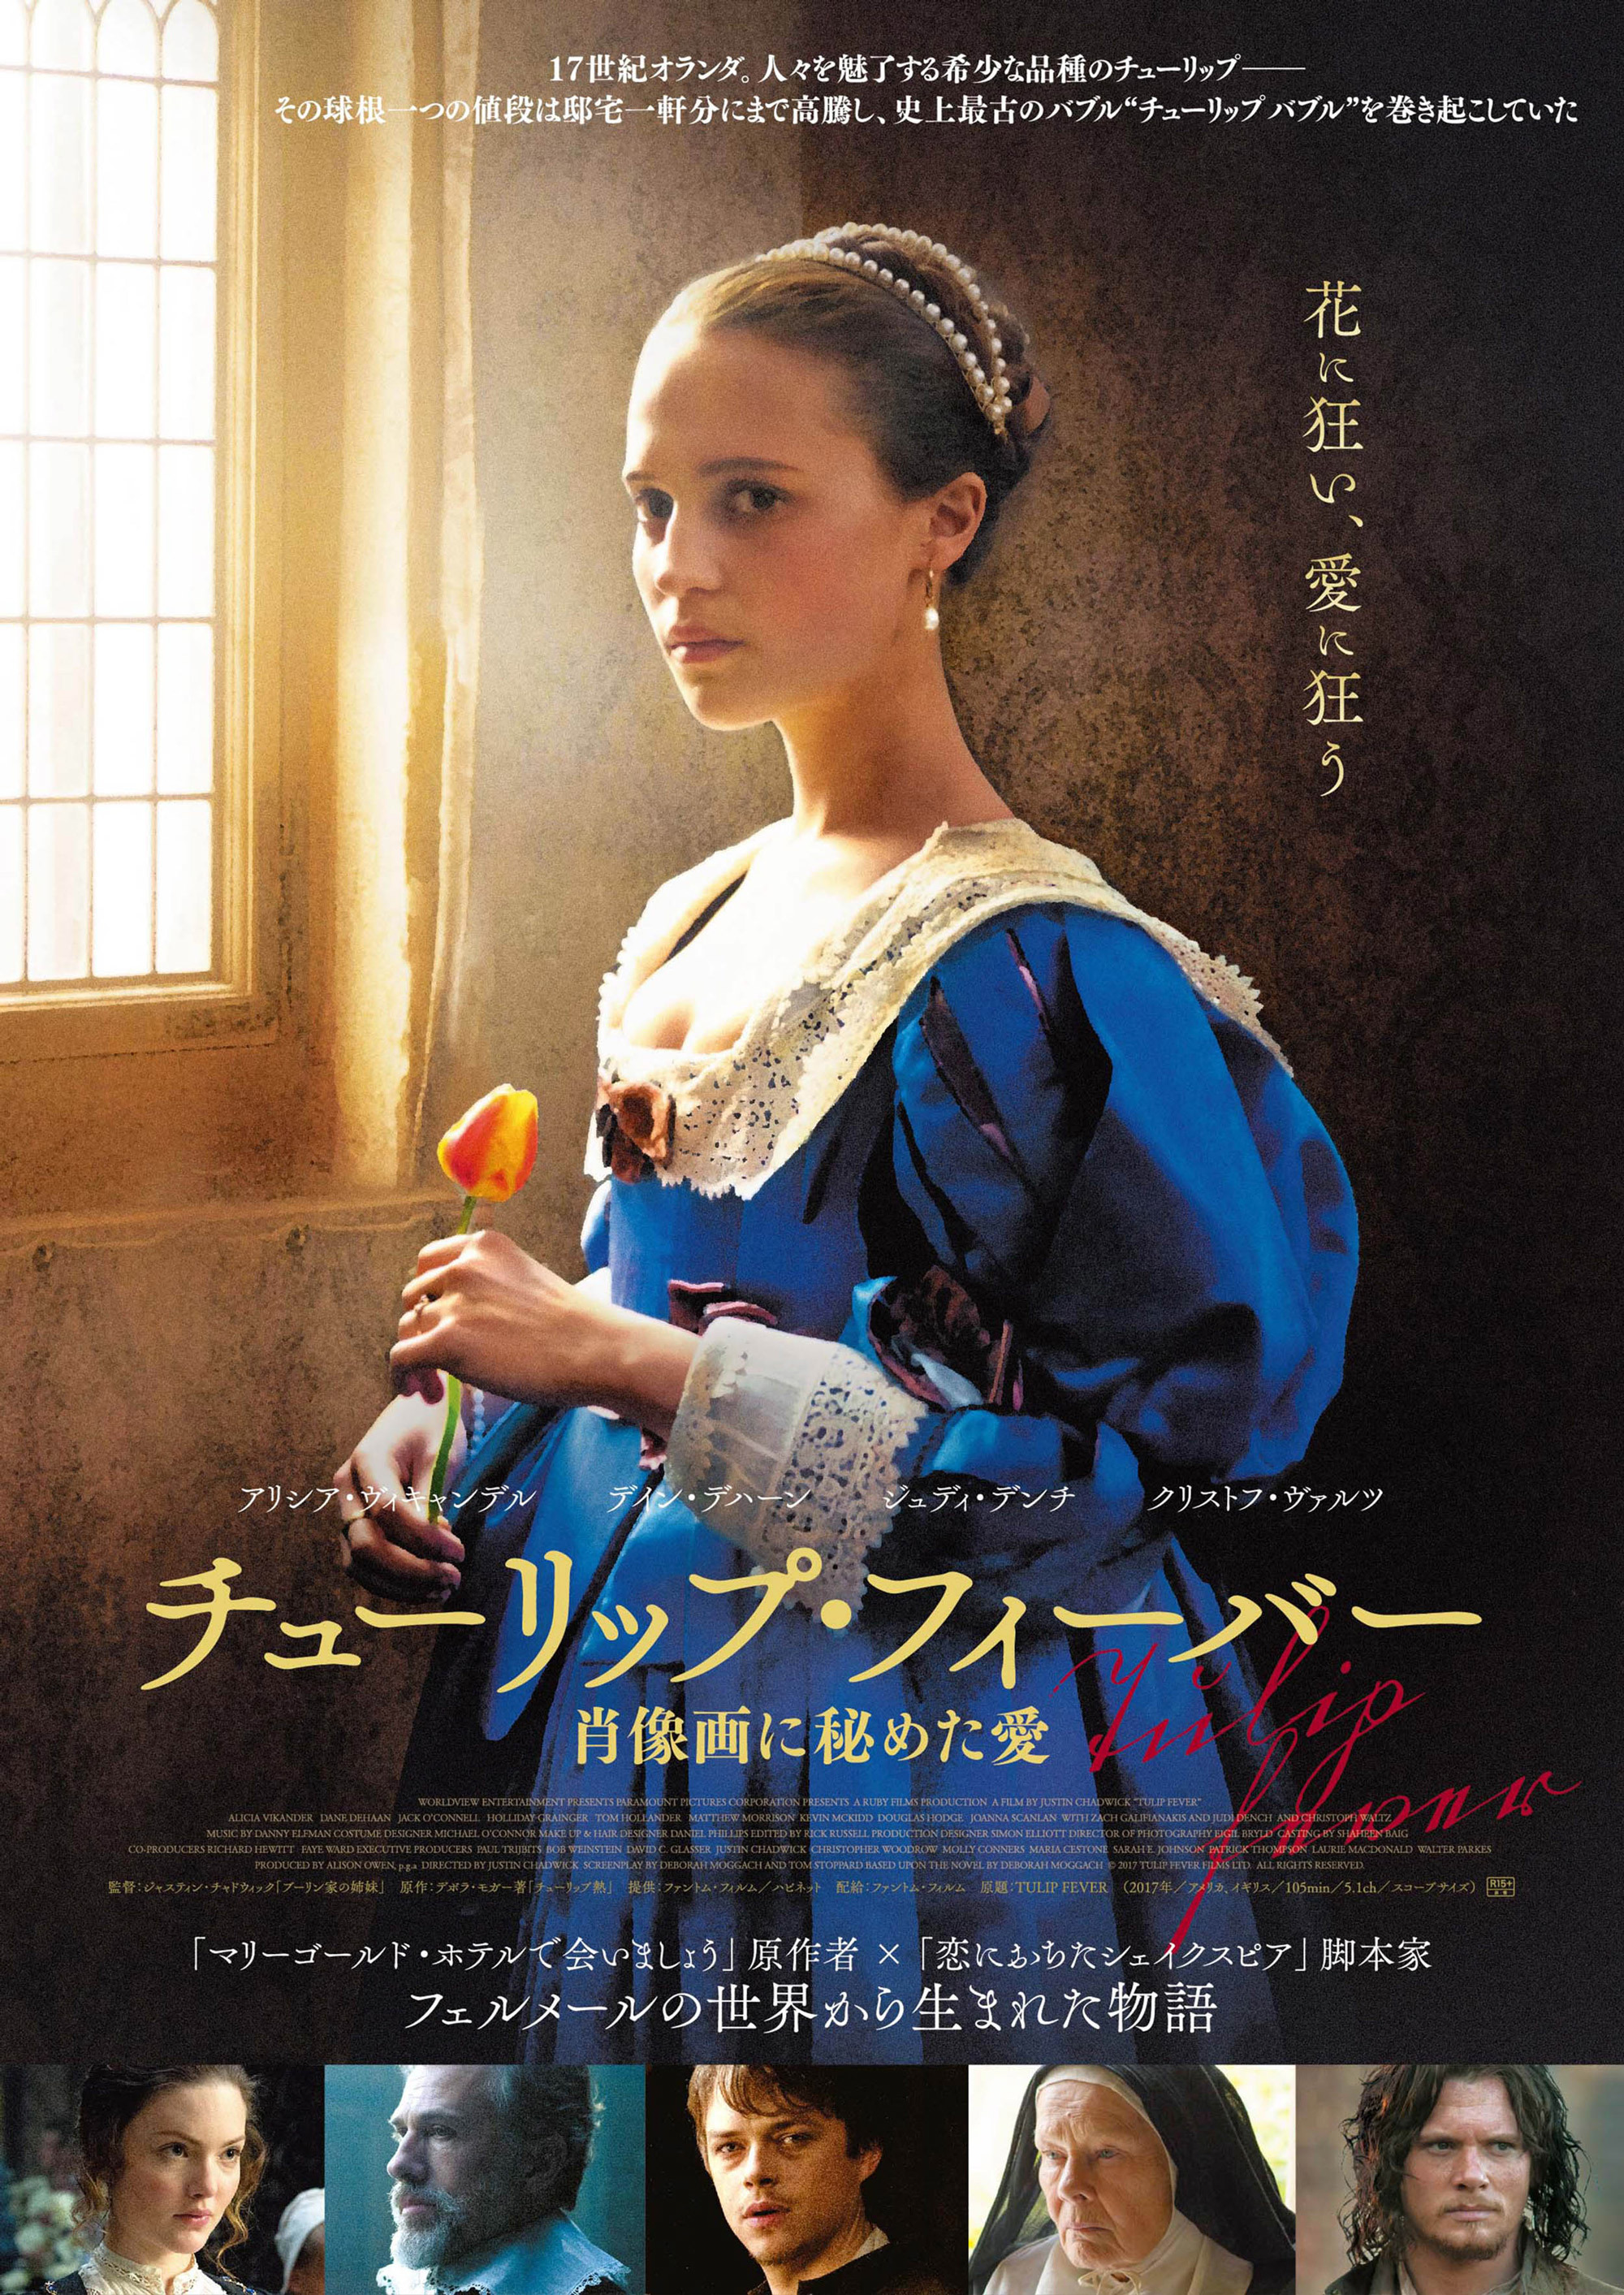 (C) 2017 TULIP FEVER FILMS LTD.  ALL RIGHTS RESERVED.